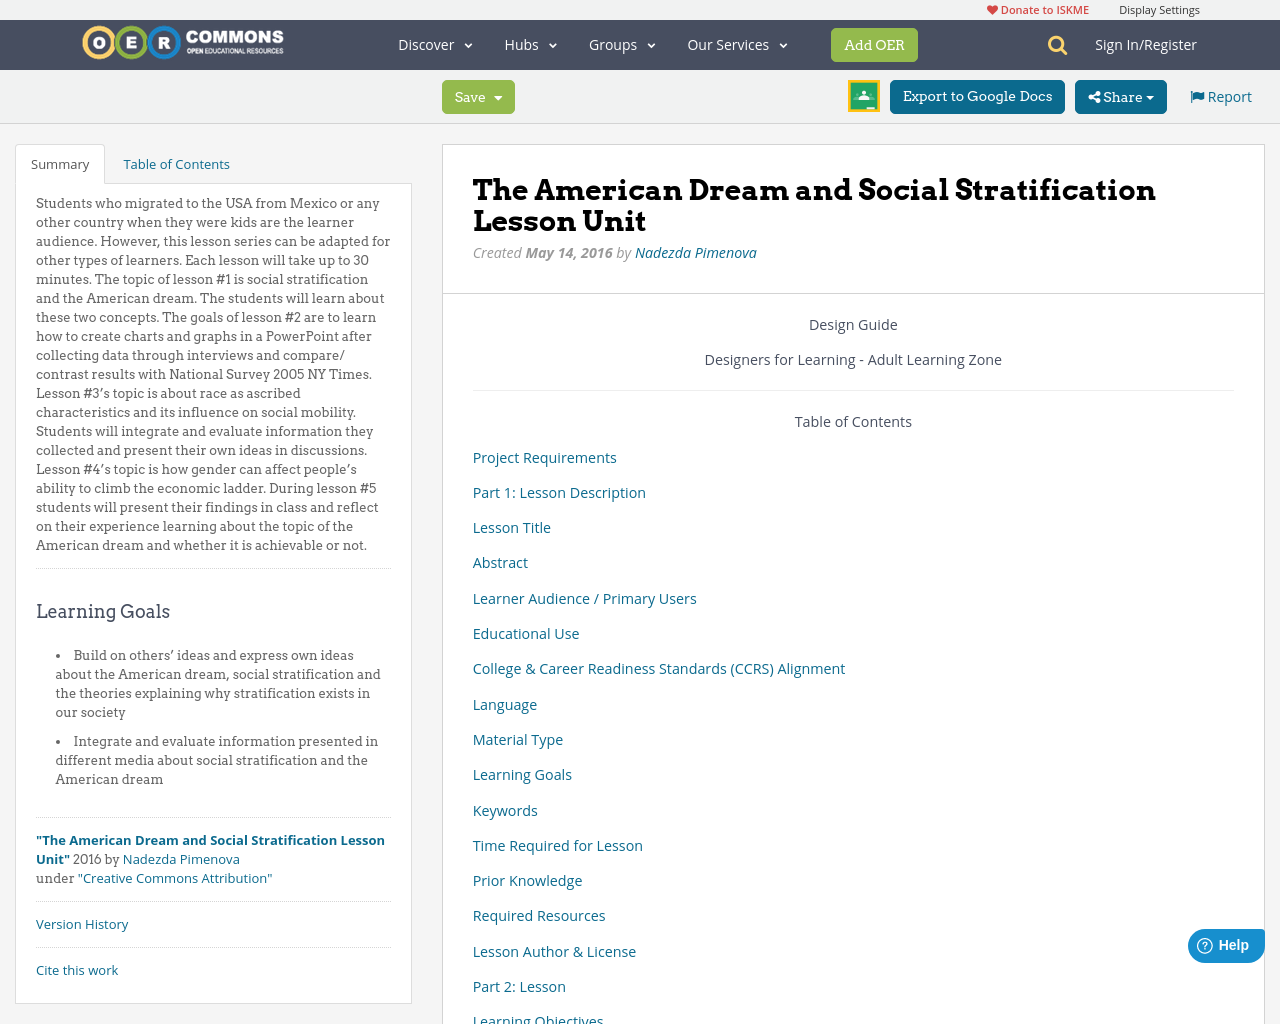 the american dream and social stratification lesson unit oer commons